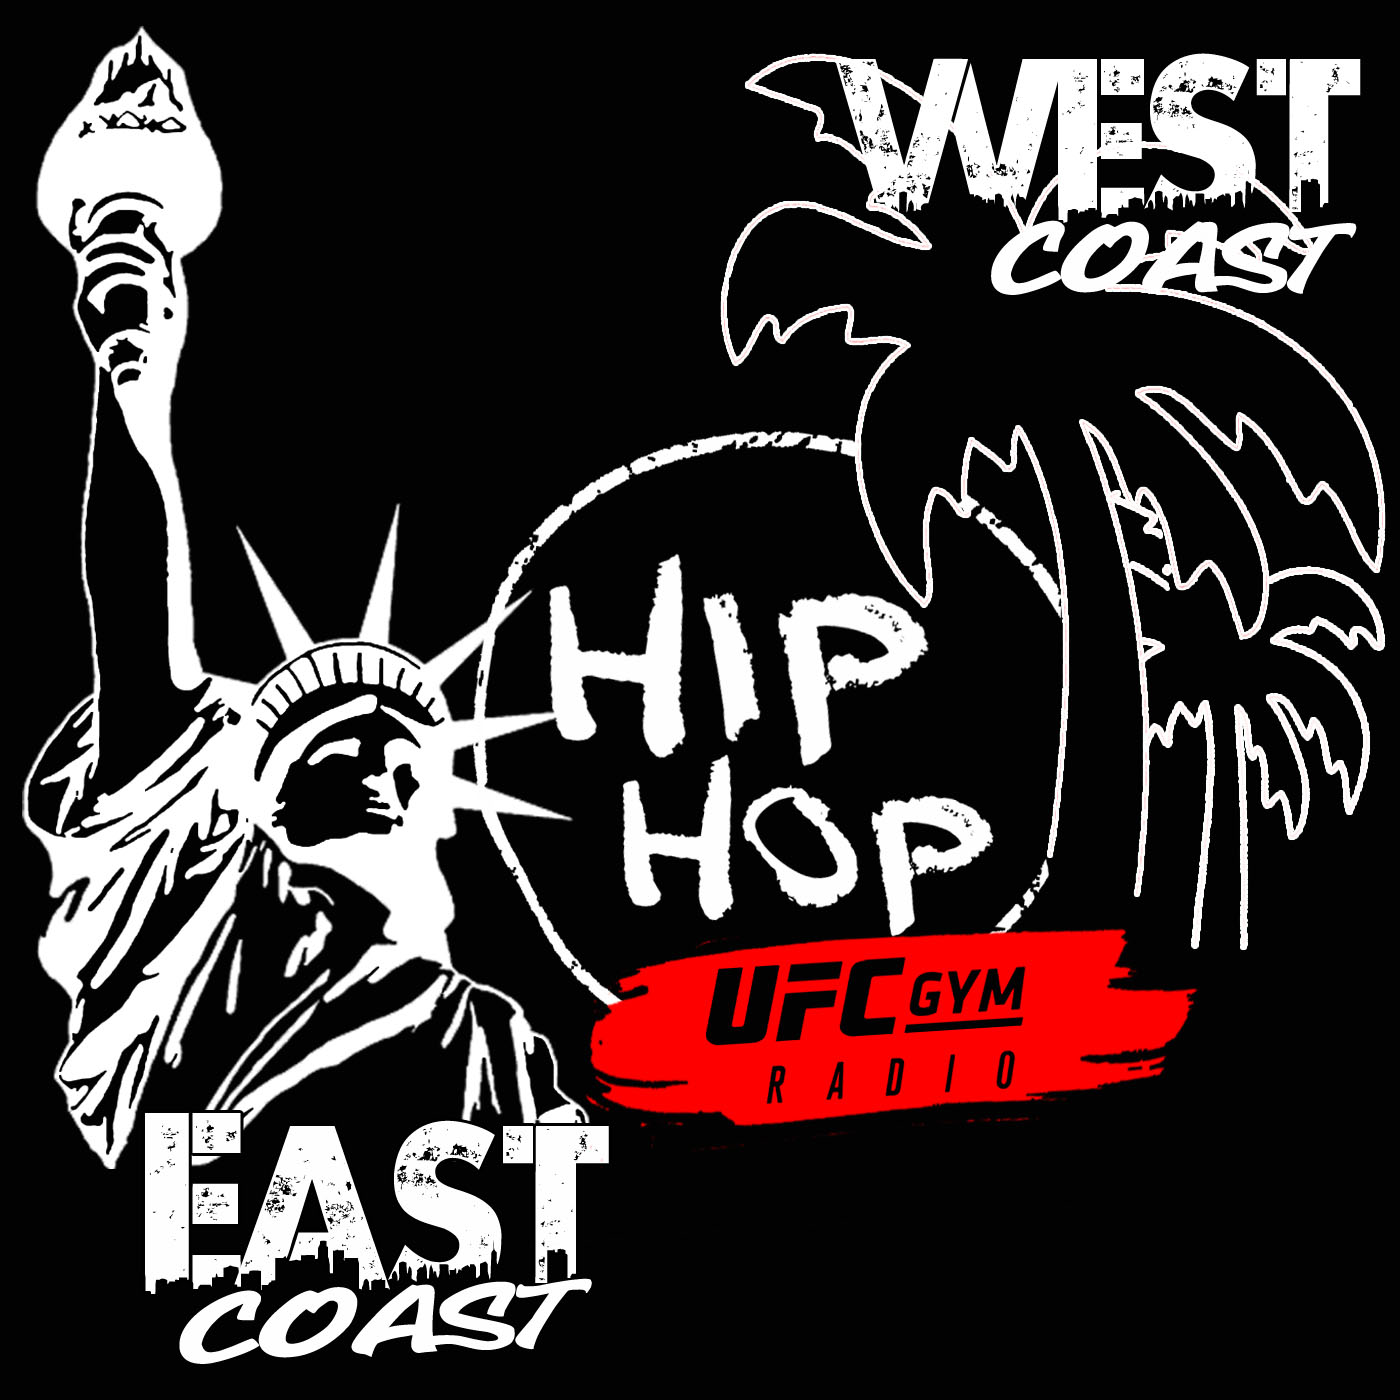 UFC GYM RADIO 529 - HIP HOP (East Coast - West Coast)